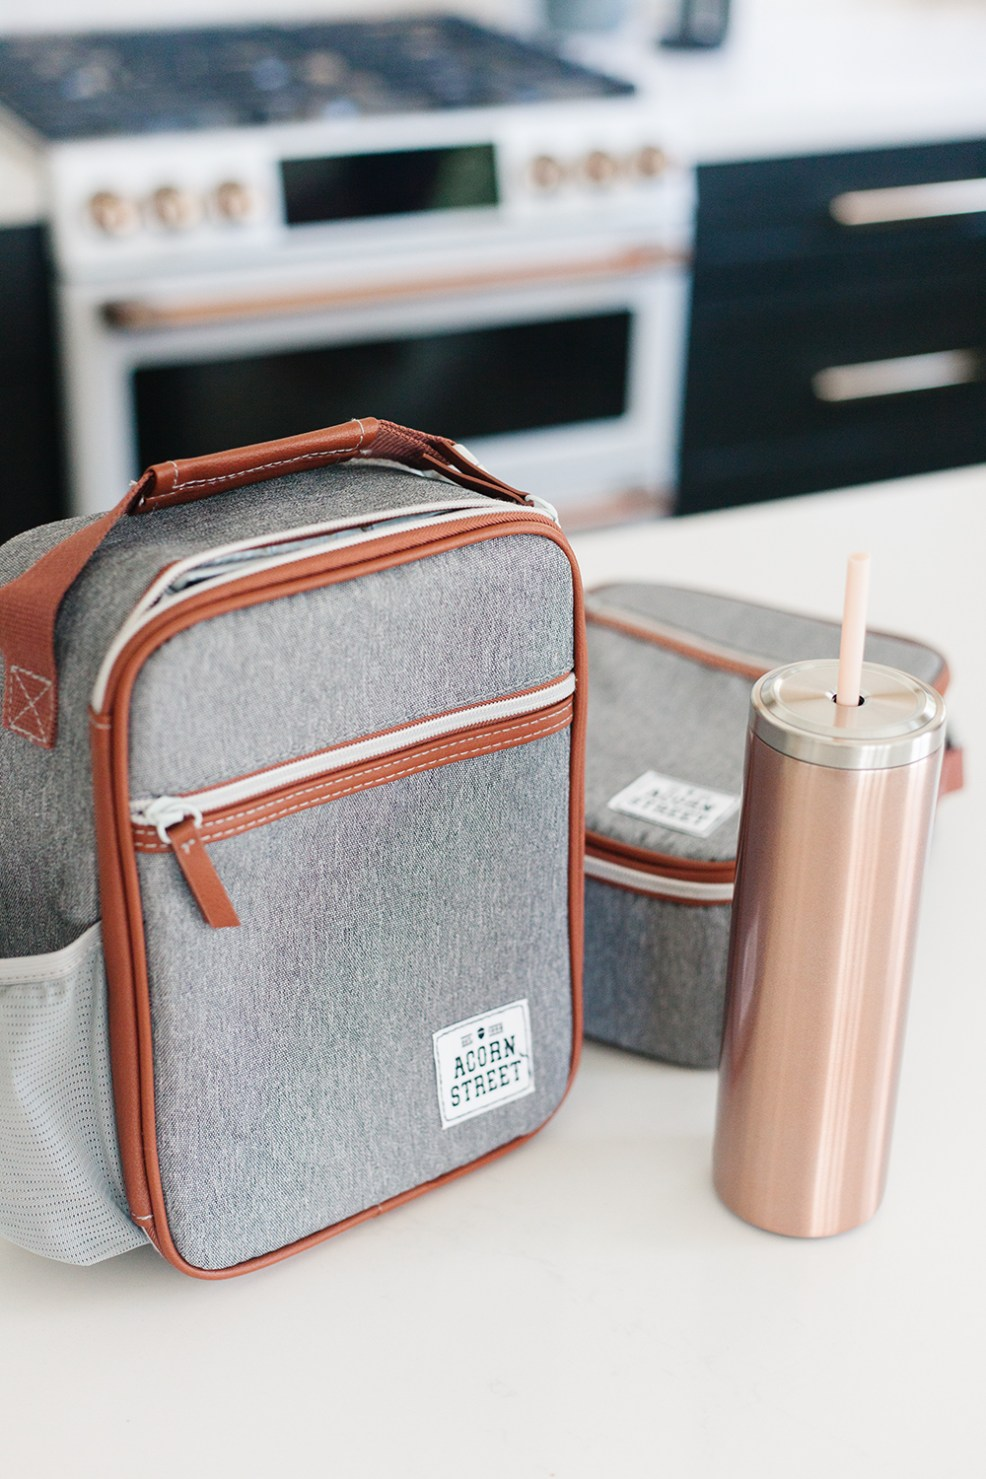 Wow and Now by popular US life an style blog, E. Interiors Design: image of a Wow and Now Acorn Street lunch box and Wow and Now rose gold tumbler.